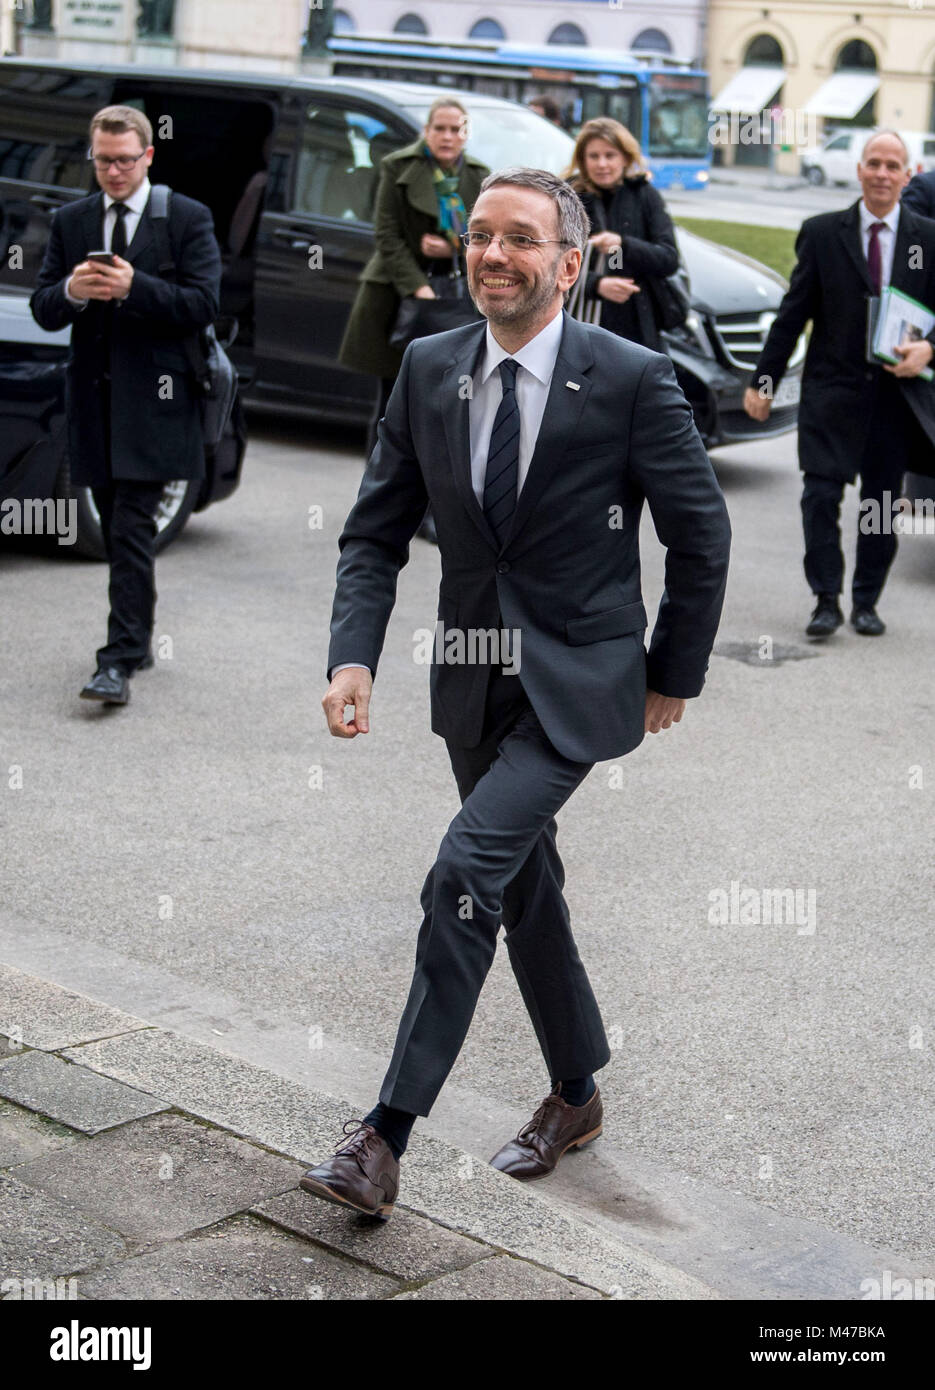 Munich, Germany. 15th Feb, 2018. Herbert Kickl (FPO), Austrian Minister of Interior, walking up to the gate of the Stock Photo